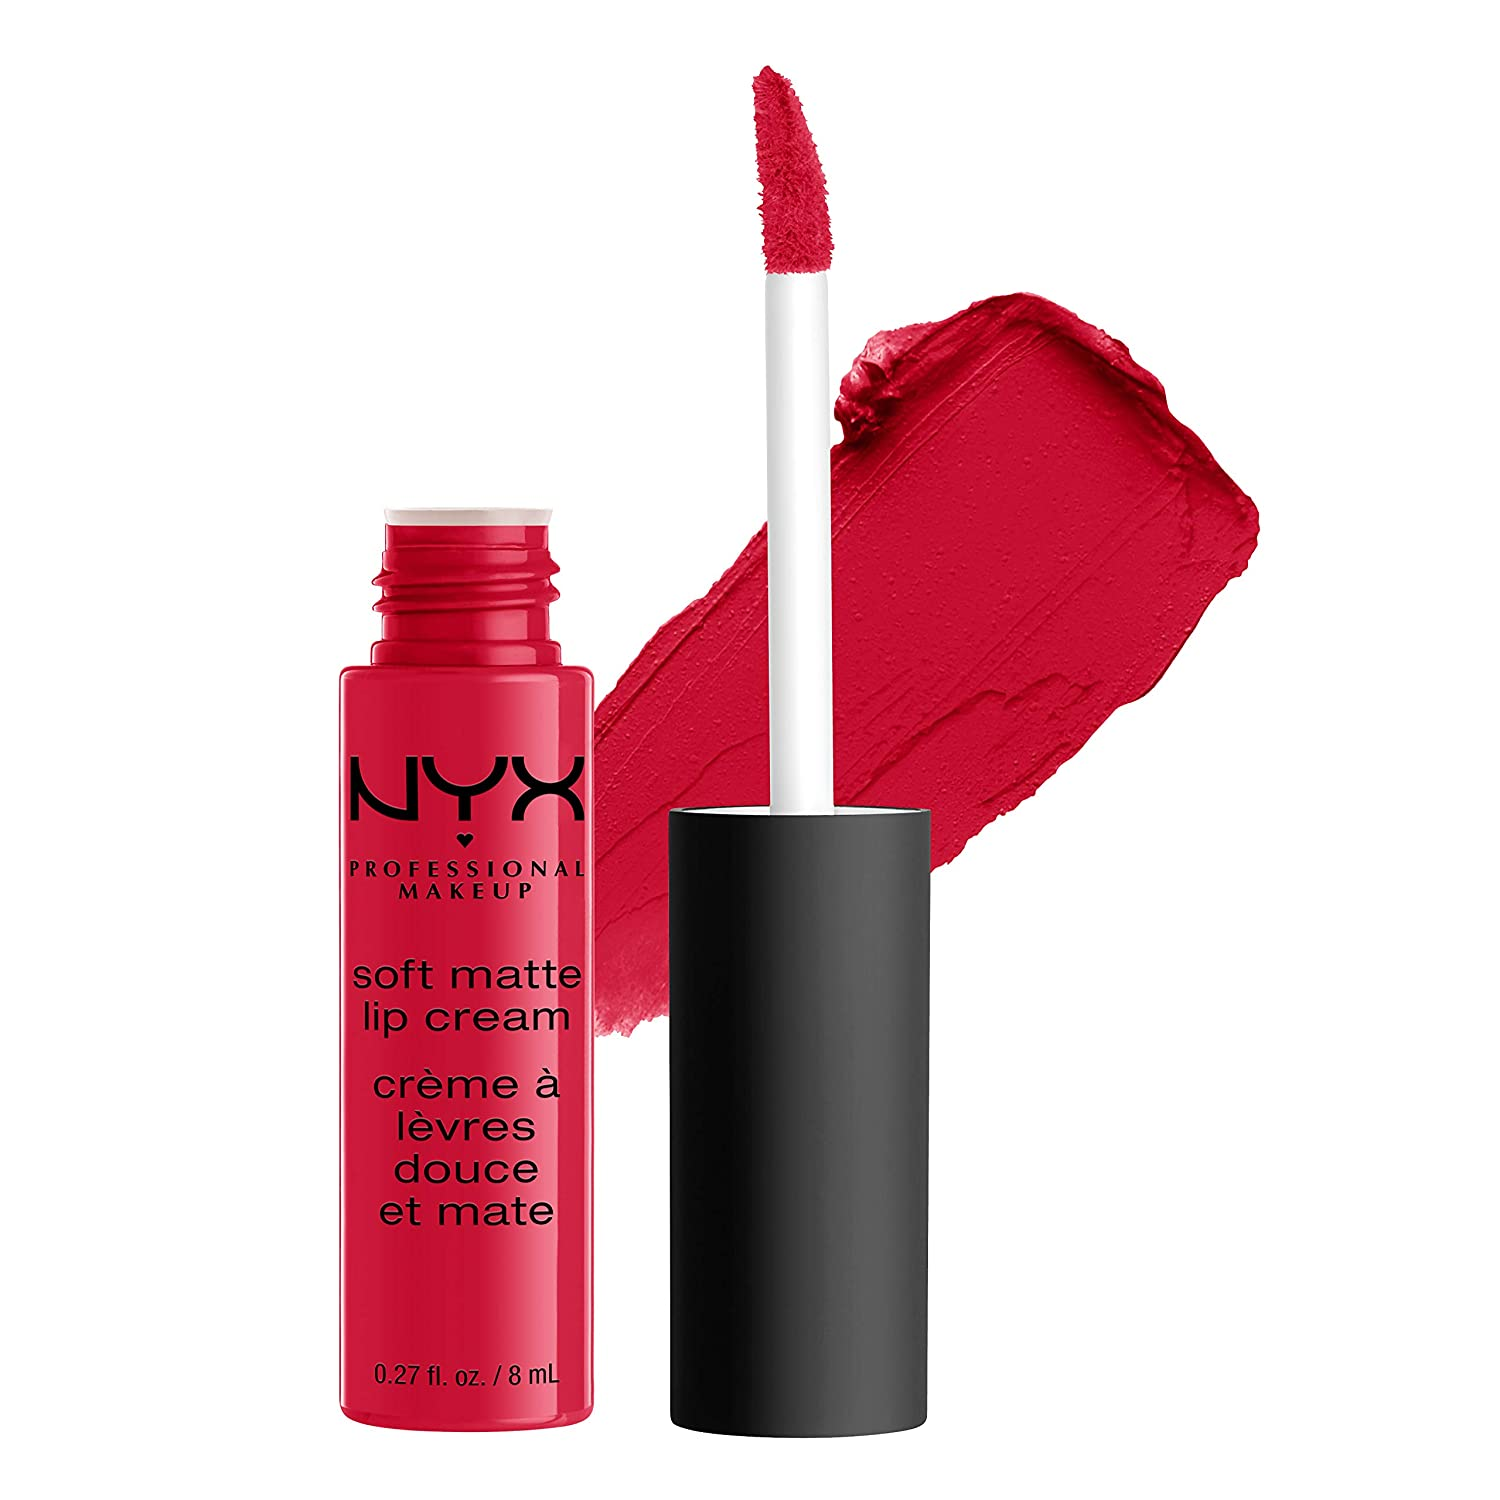 Best lipstick for dry lips - Nyx Professional Makeup Soft Matte Lip Cream